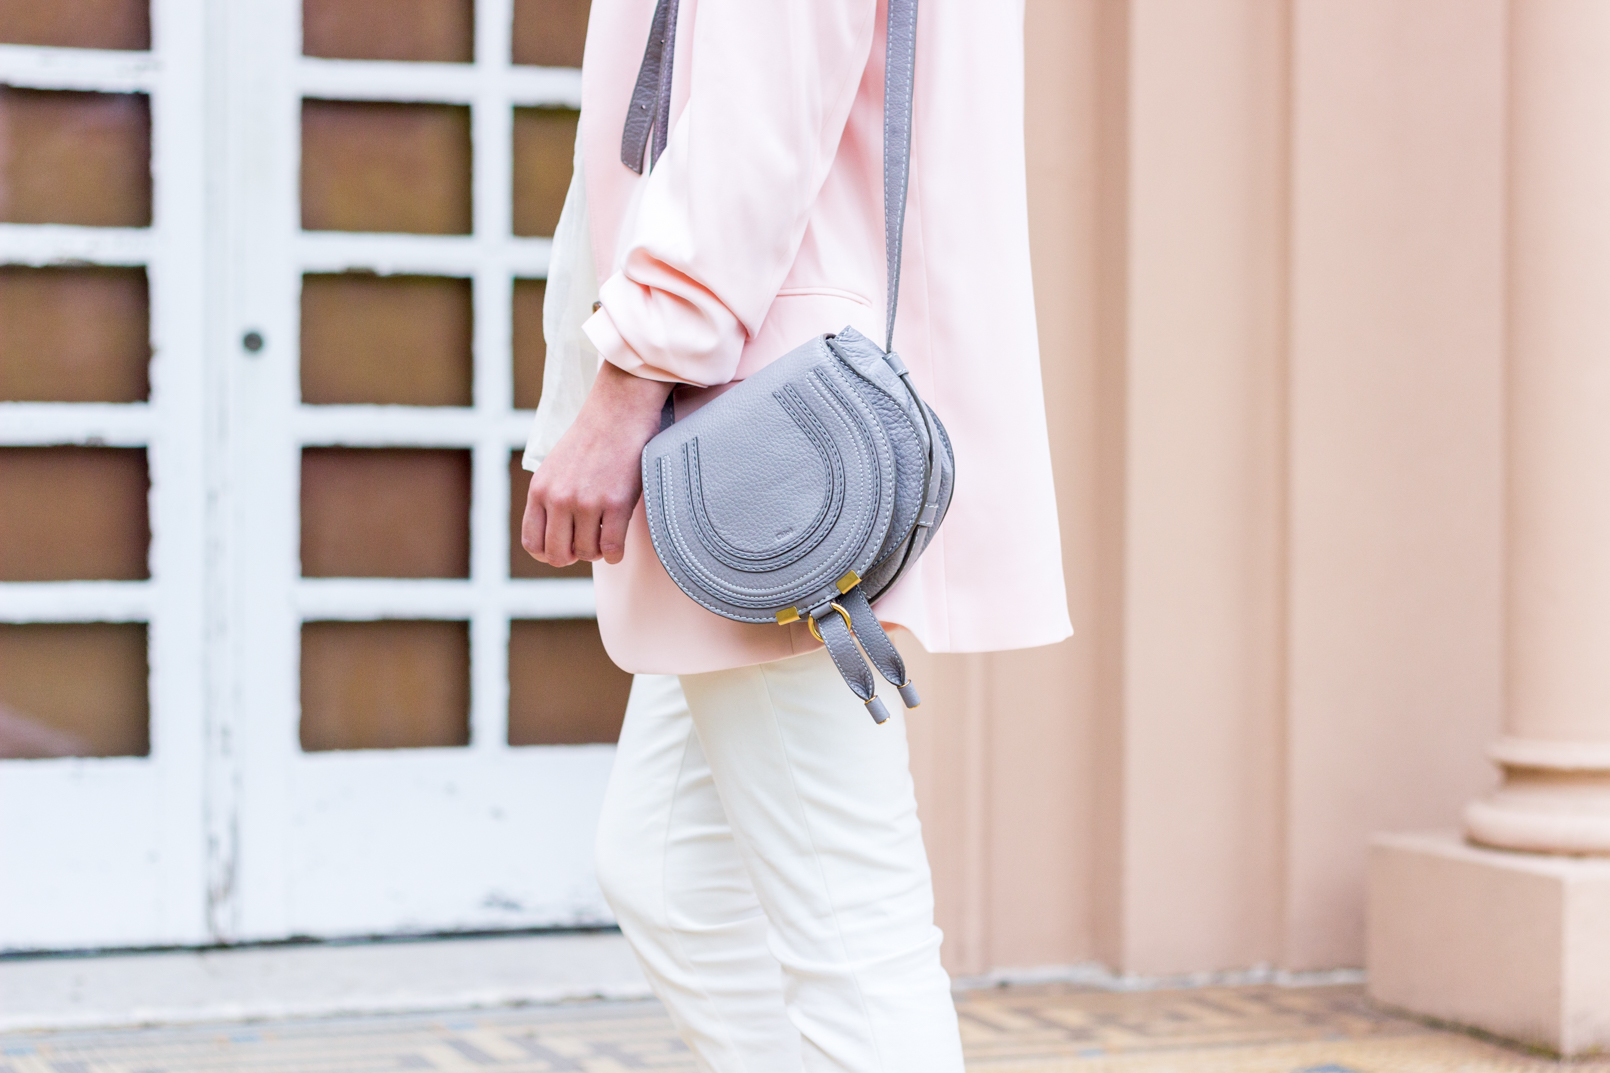 Le Fashionaire blogger catarine martins white zara trousers oversized pale pink hm blazer mini marcie gray chloe leather bag 0800 EN blogger catarine martins white zara trousers oversized pale pink hm blazer mini marcie gray chloe leather bag 0800 EN